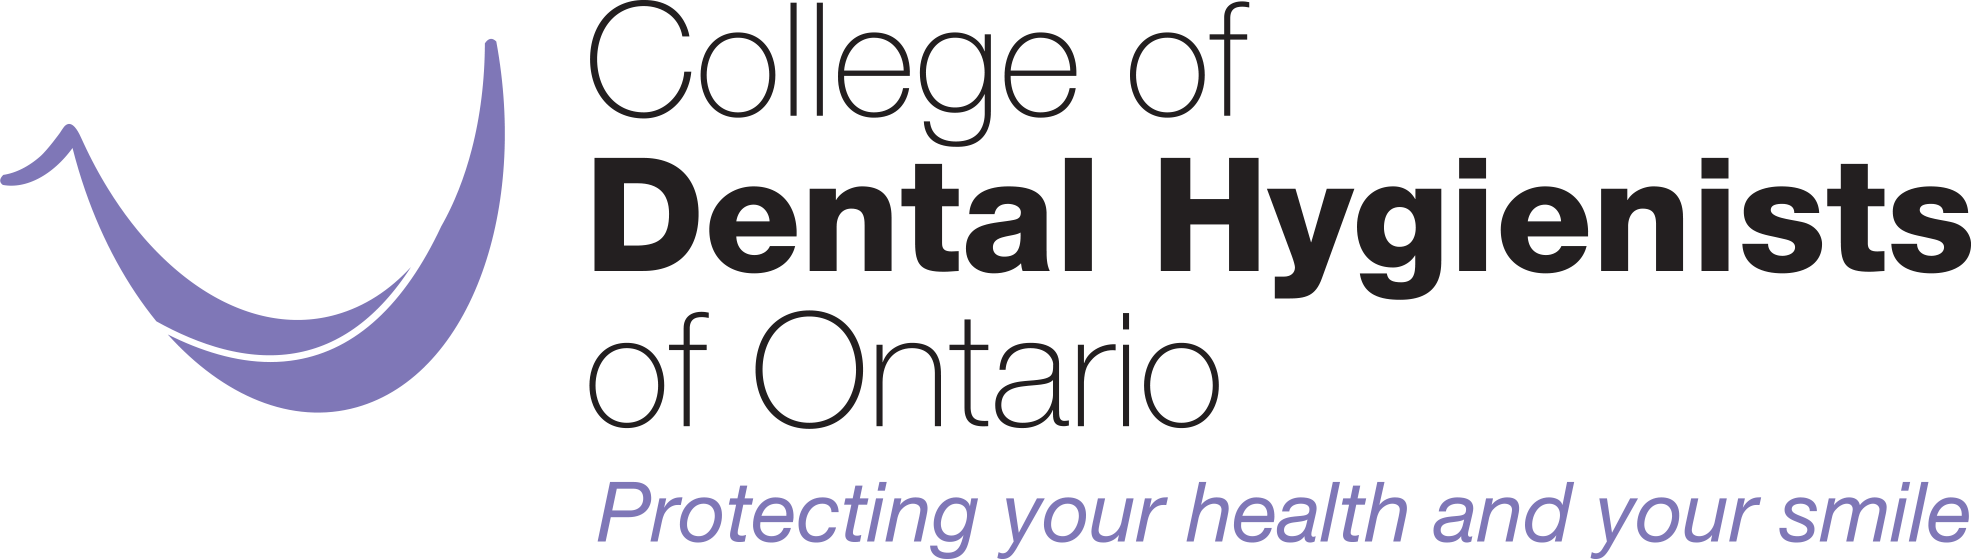 CDHO Ensures Dental Hygienists Keep You Safe During COVID-19